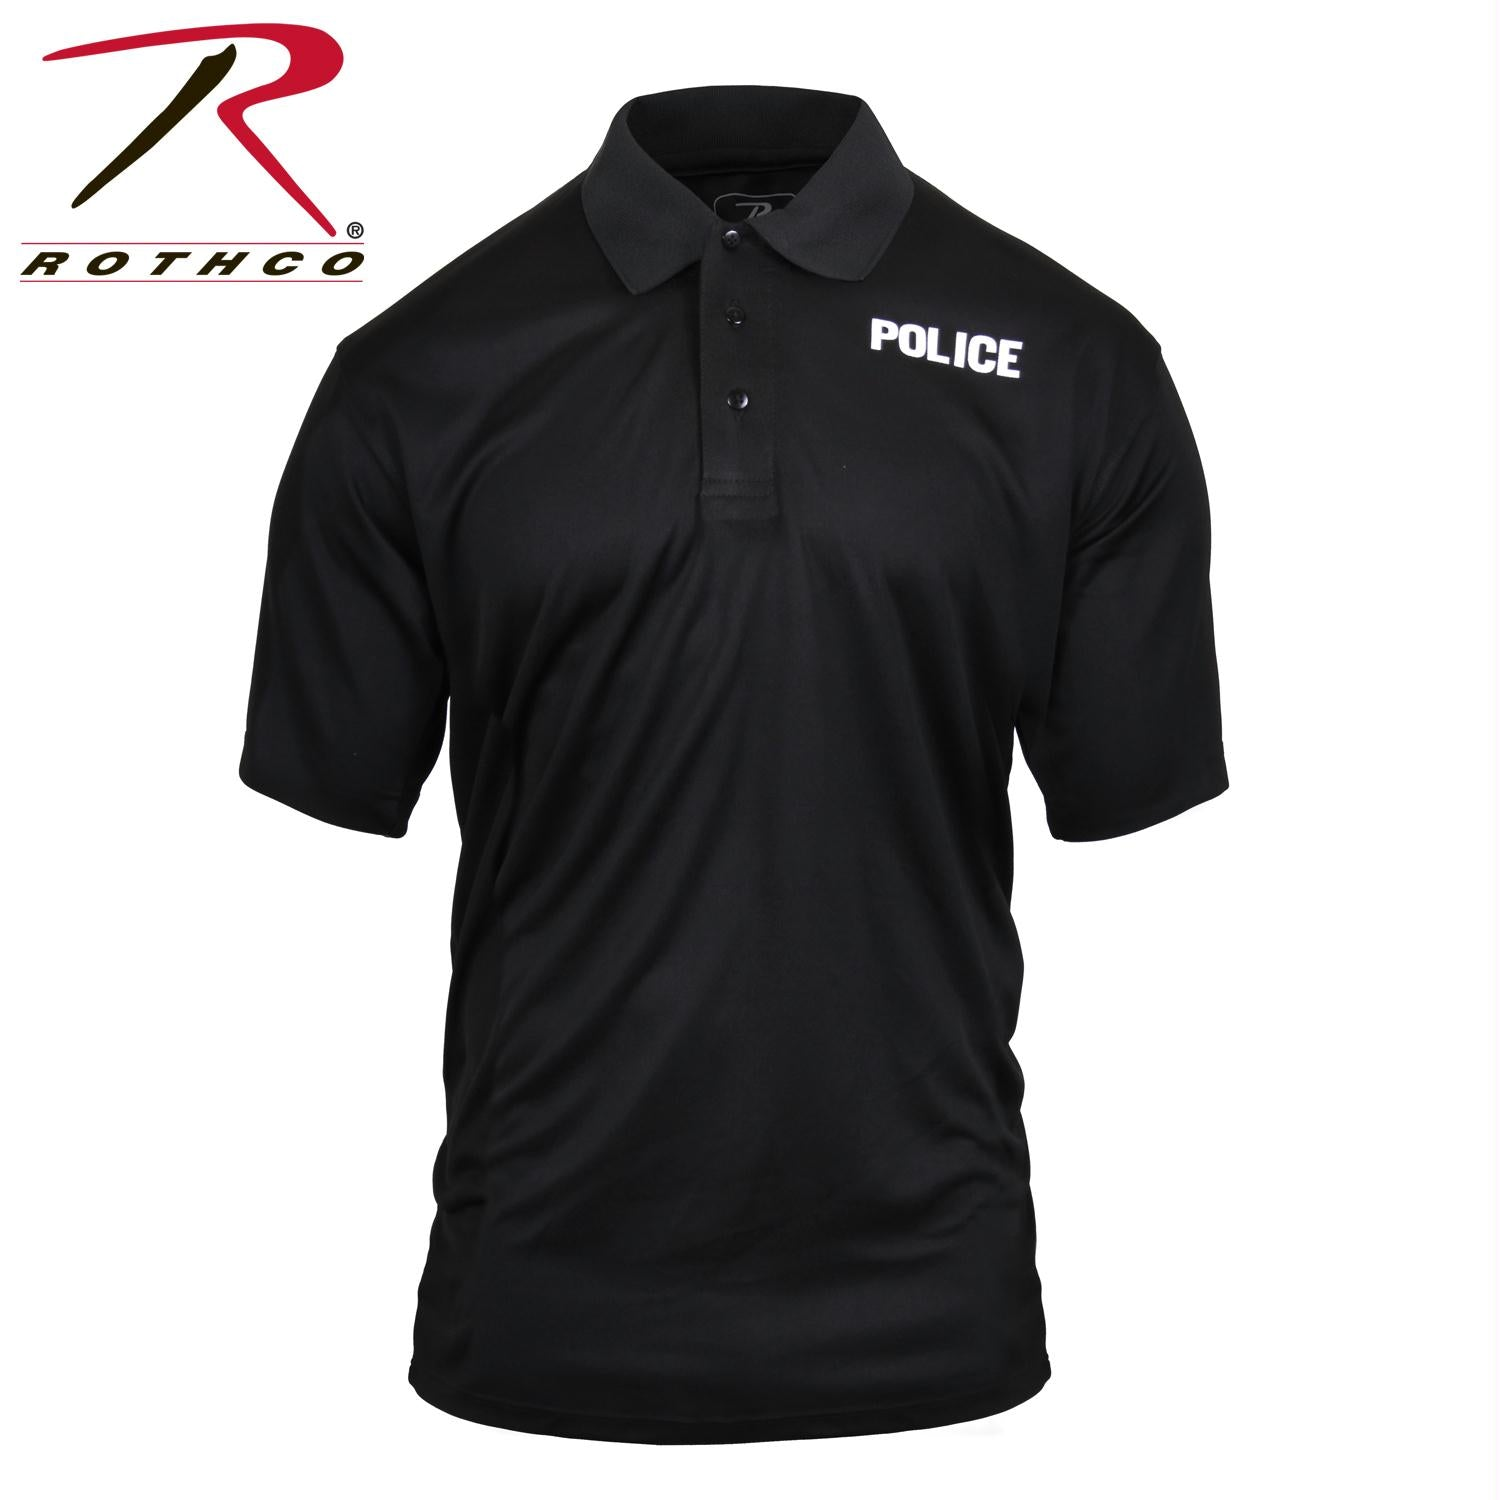 Rothco Moisture Wicking Public Safety Polo Shirt - Police / S